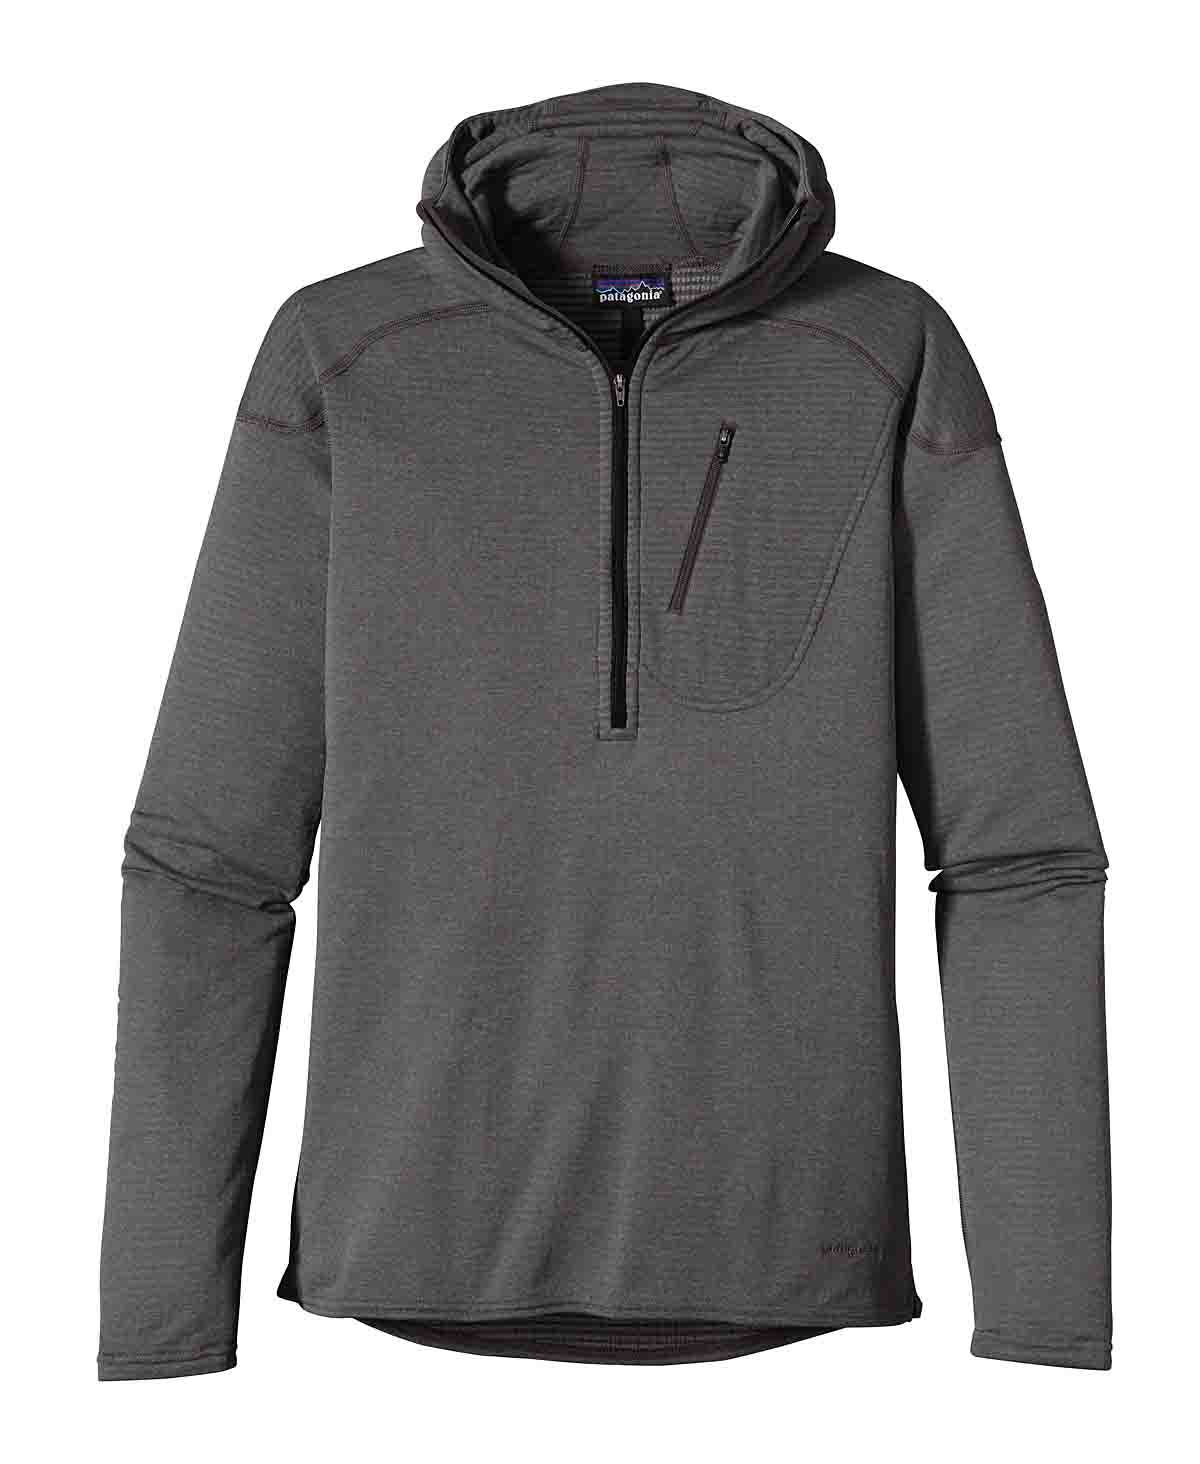 Patagonia Capilene 4 Expedition Weight Baselayer with Polartec Power Dry High Efficiency